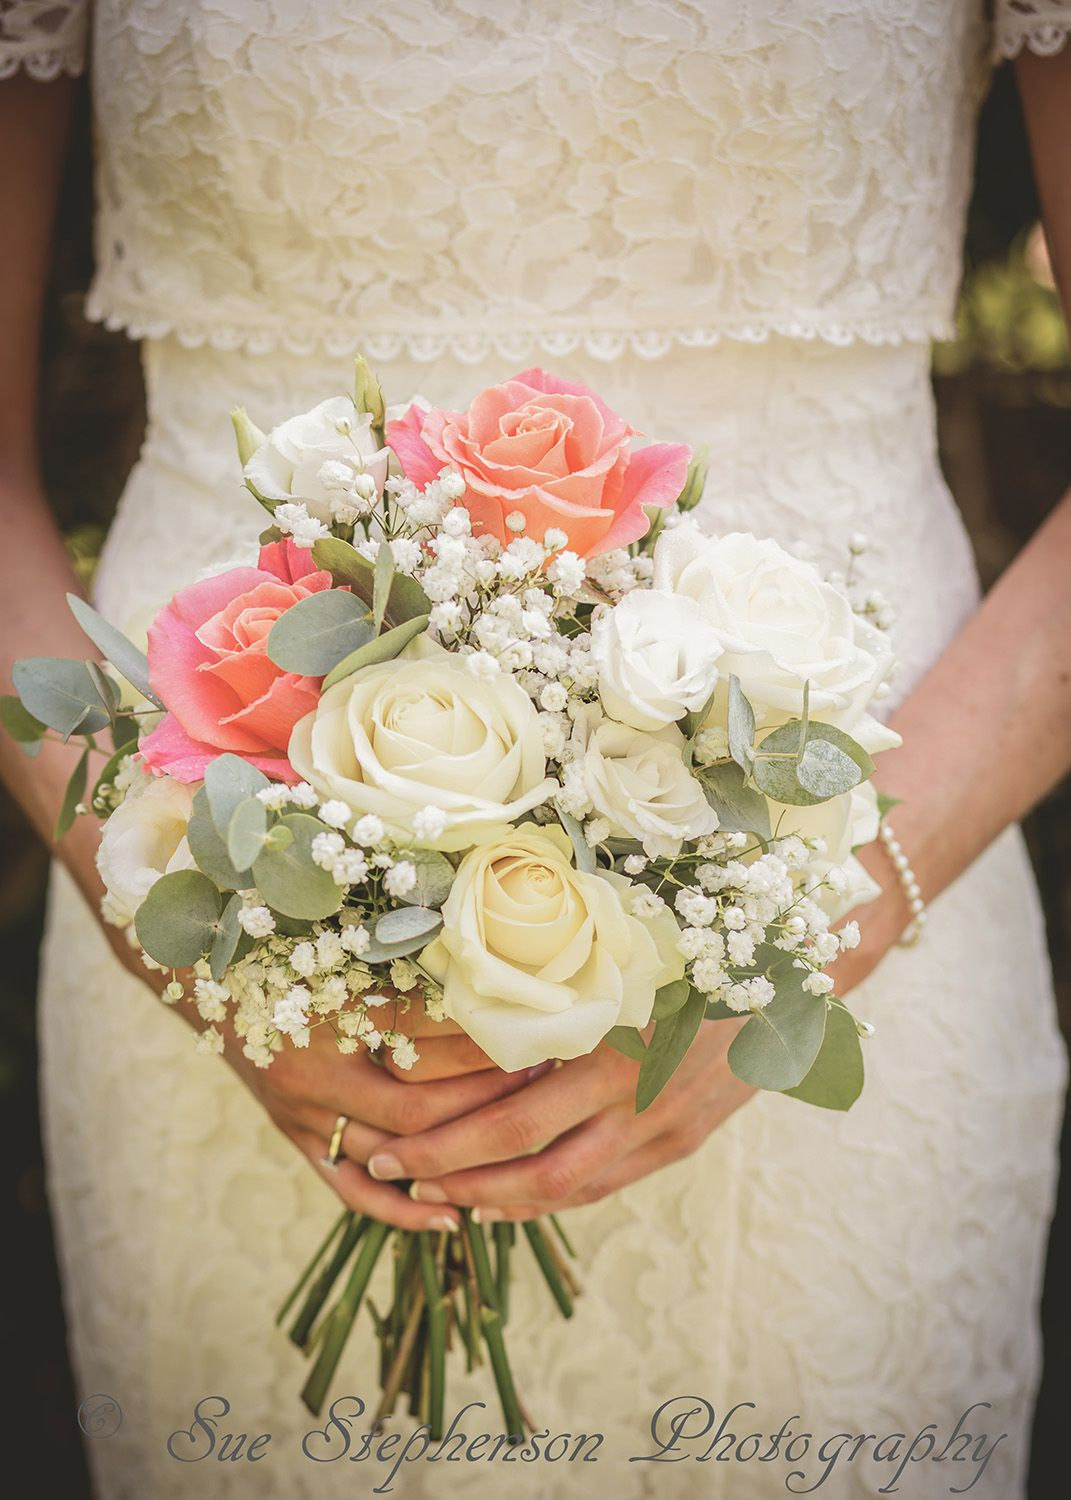 Pin On 28 Images Of Elegant And Beautiful Wedding Bouquets From Real Weddings